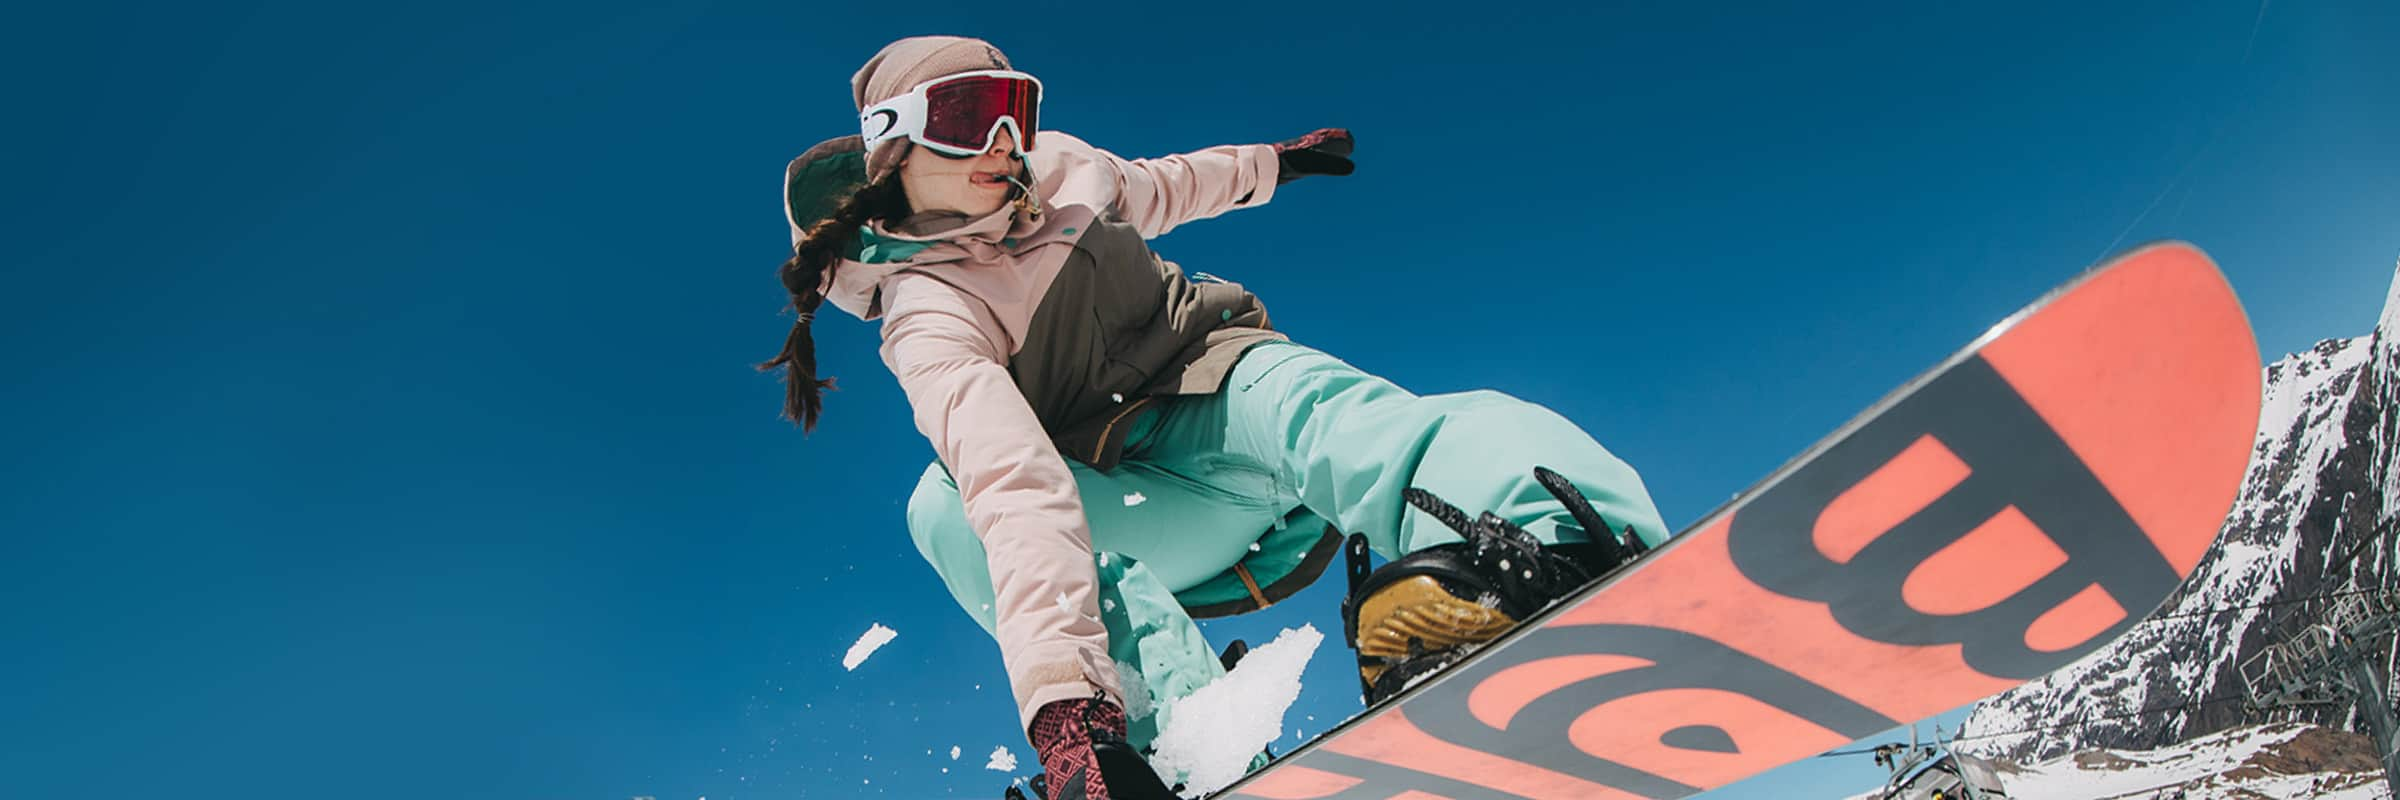 Burton Youth Collection: Winterwear for Kid's They're Sure to Love